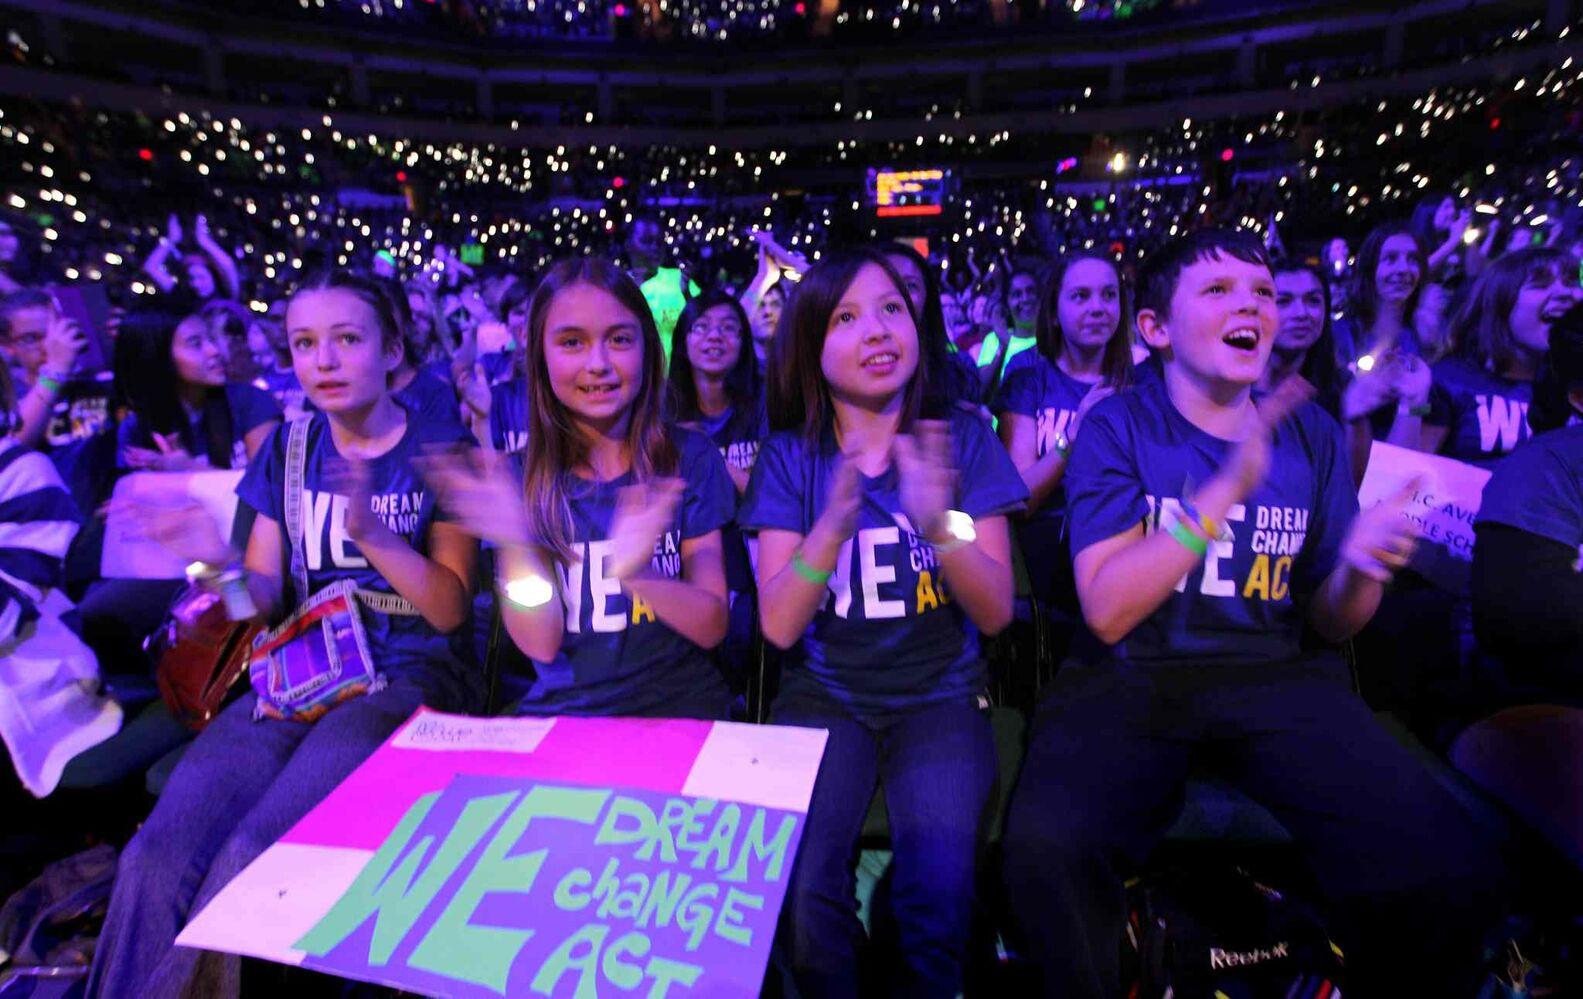 Students from H.C Avery School celebrate the events on stage. (Ruth Bonneville / Winnipeg Free Press)